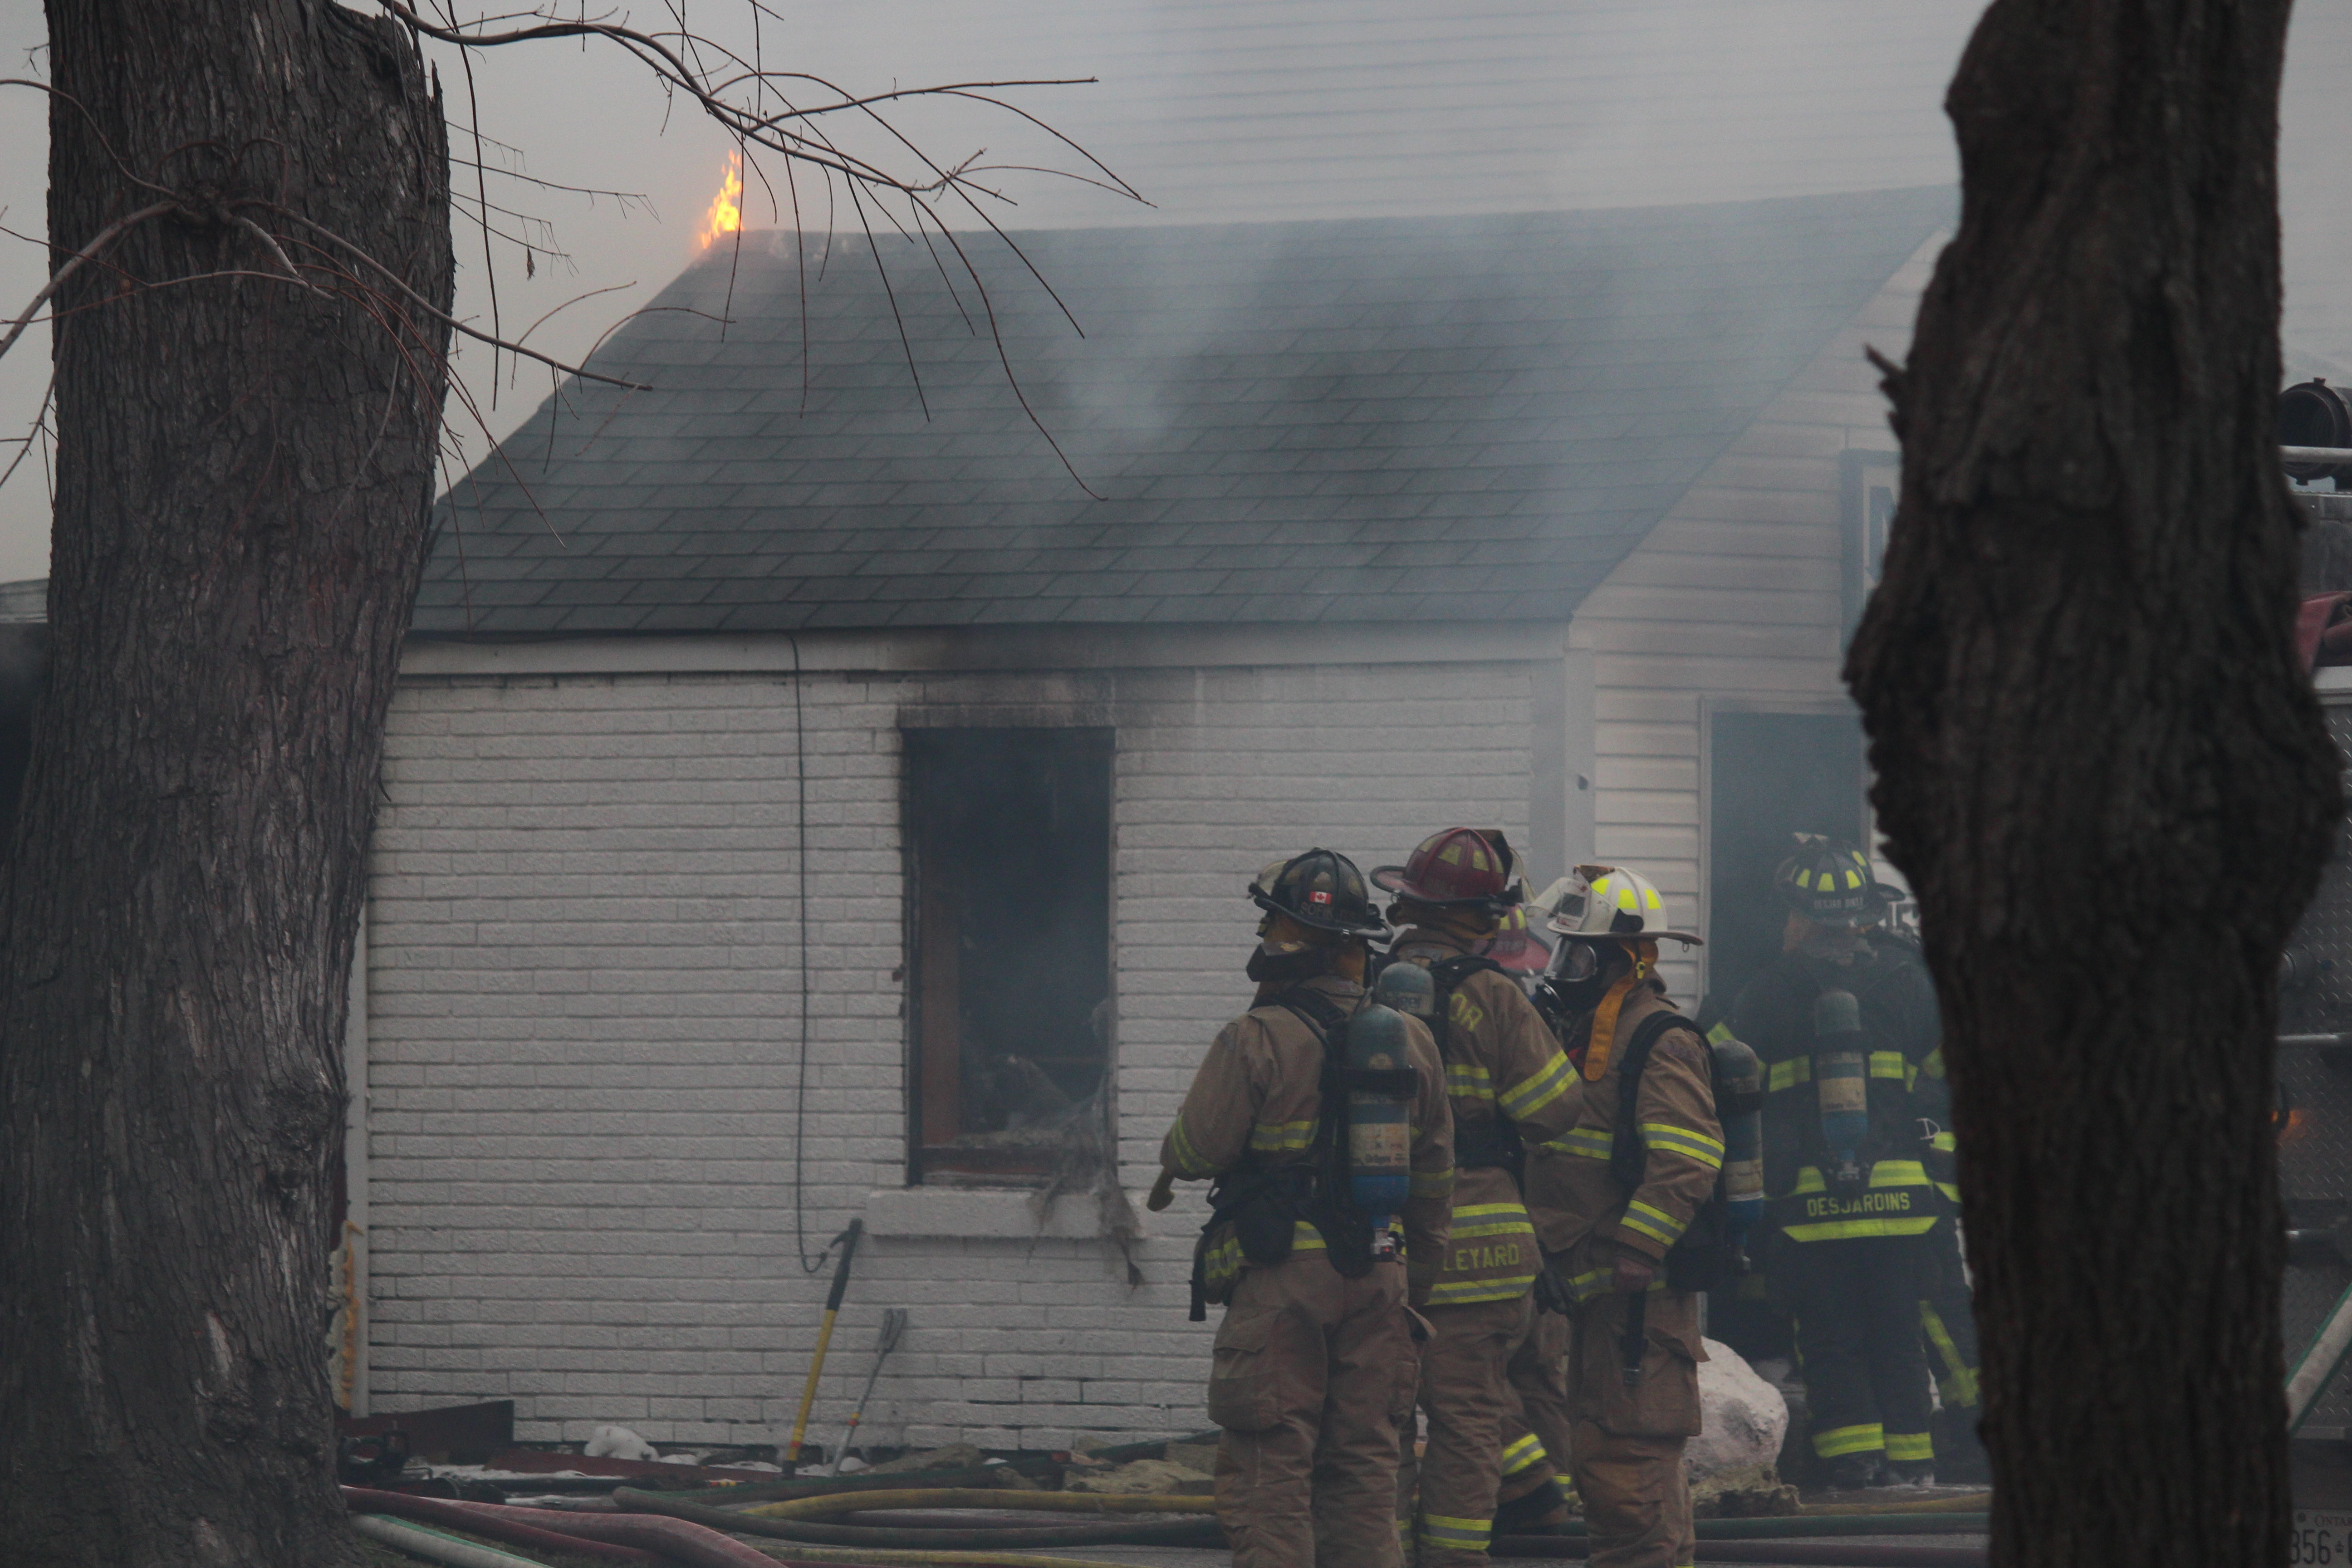 Windsor fire crews battle a blaze at 1574 Gladestone Ave., April 7, 2015. (Photo by Jason Viau)